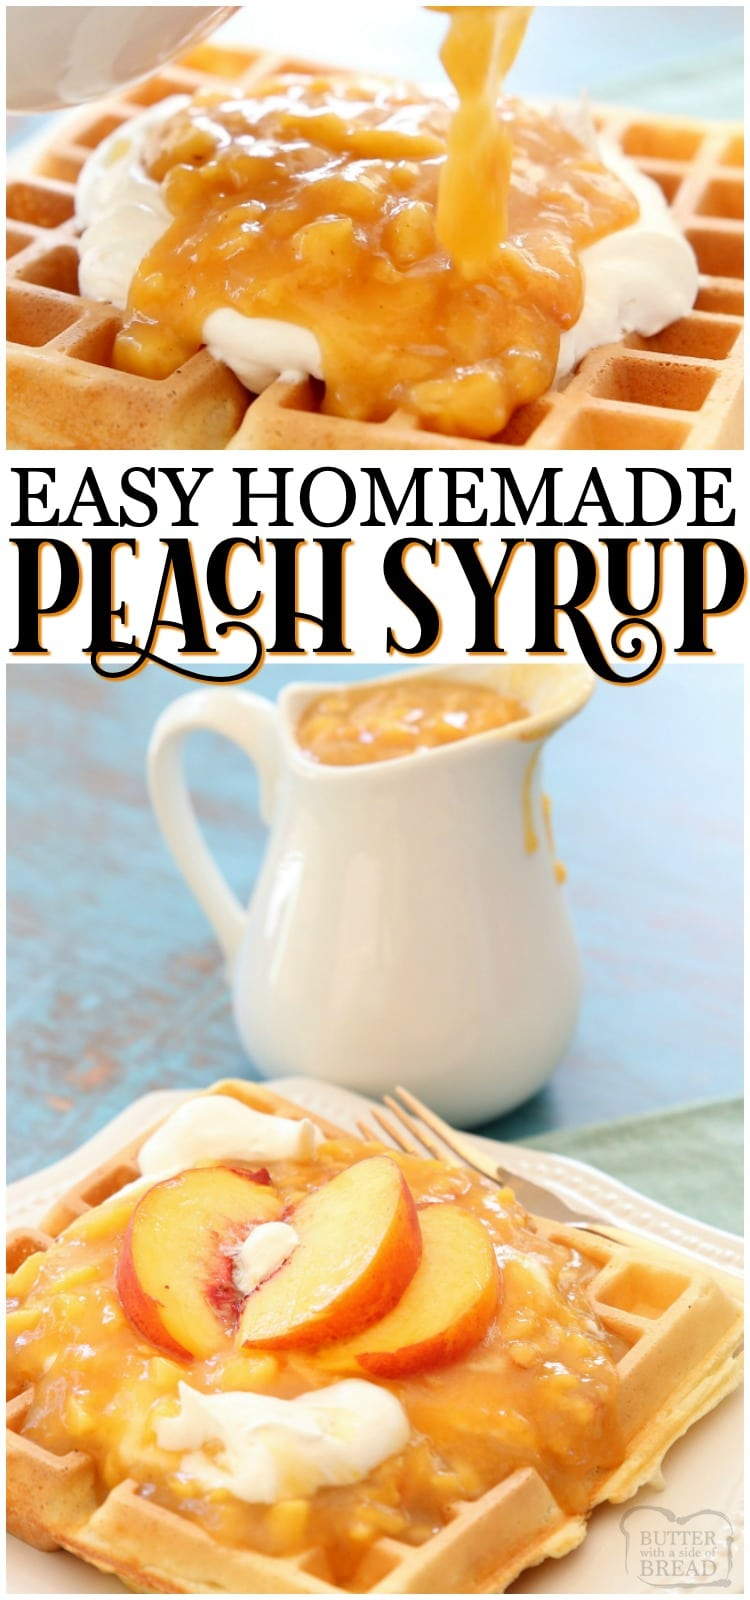 Chunky Peach Syrup made easy in 10 minutes in the microwave! Bursting with sweet peach flavor, this Homemade Peach Syrup is a fantastic way to use fresh peaches! #peach #syrup #homemade #recipe #peaches from BUTTER WITH A SIDE OF BREAD